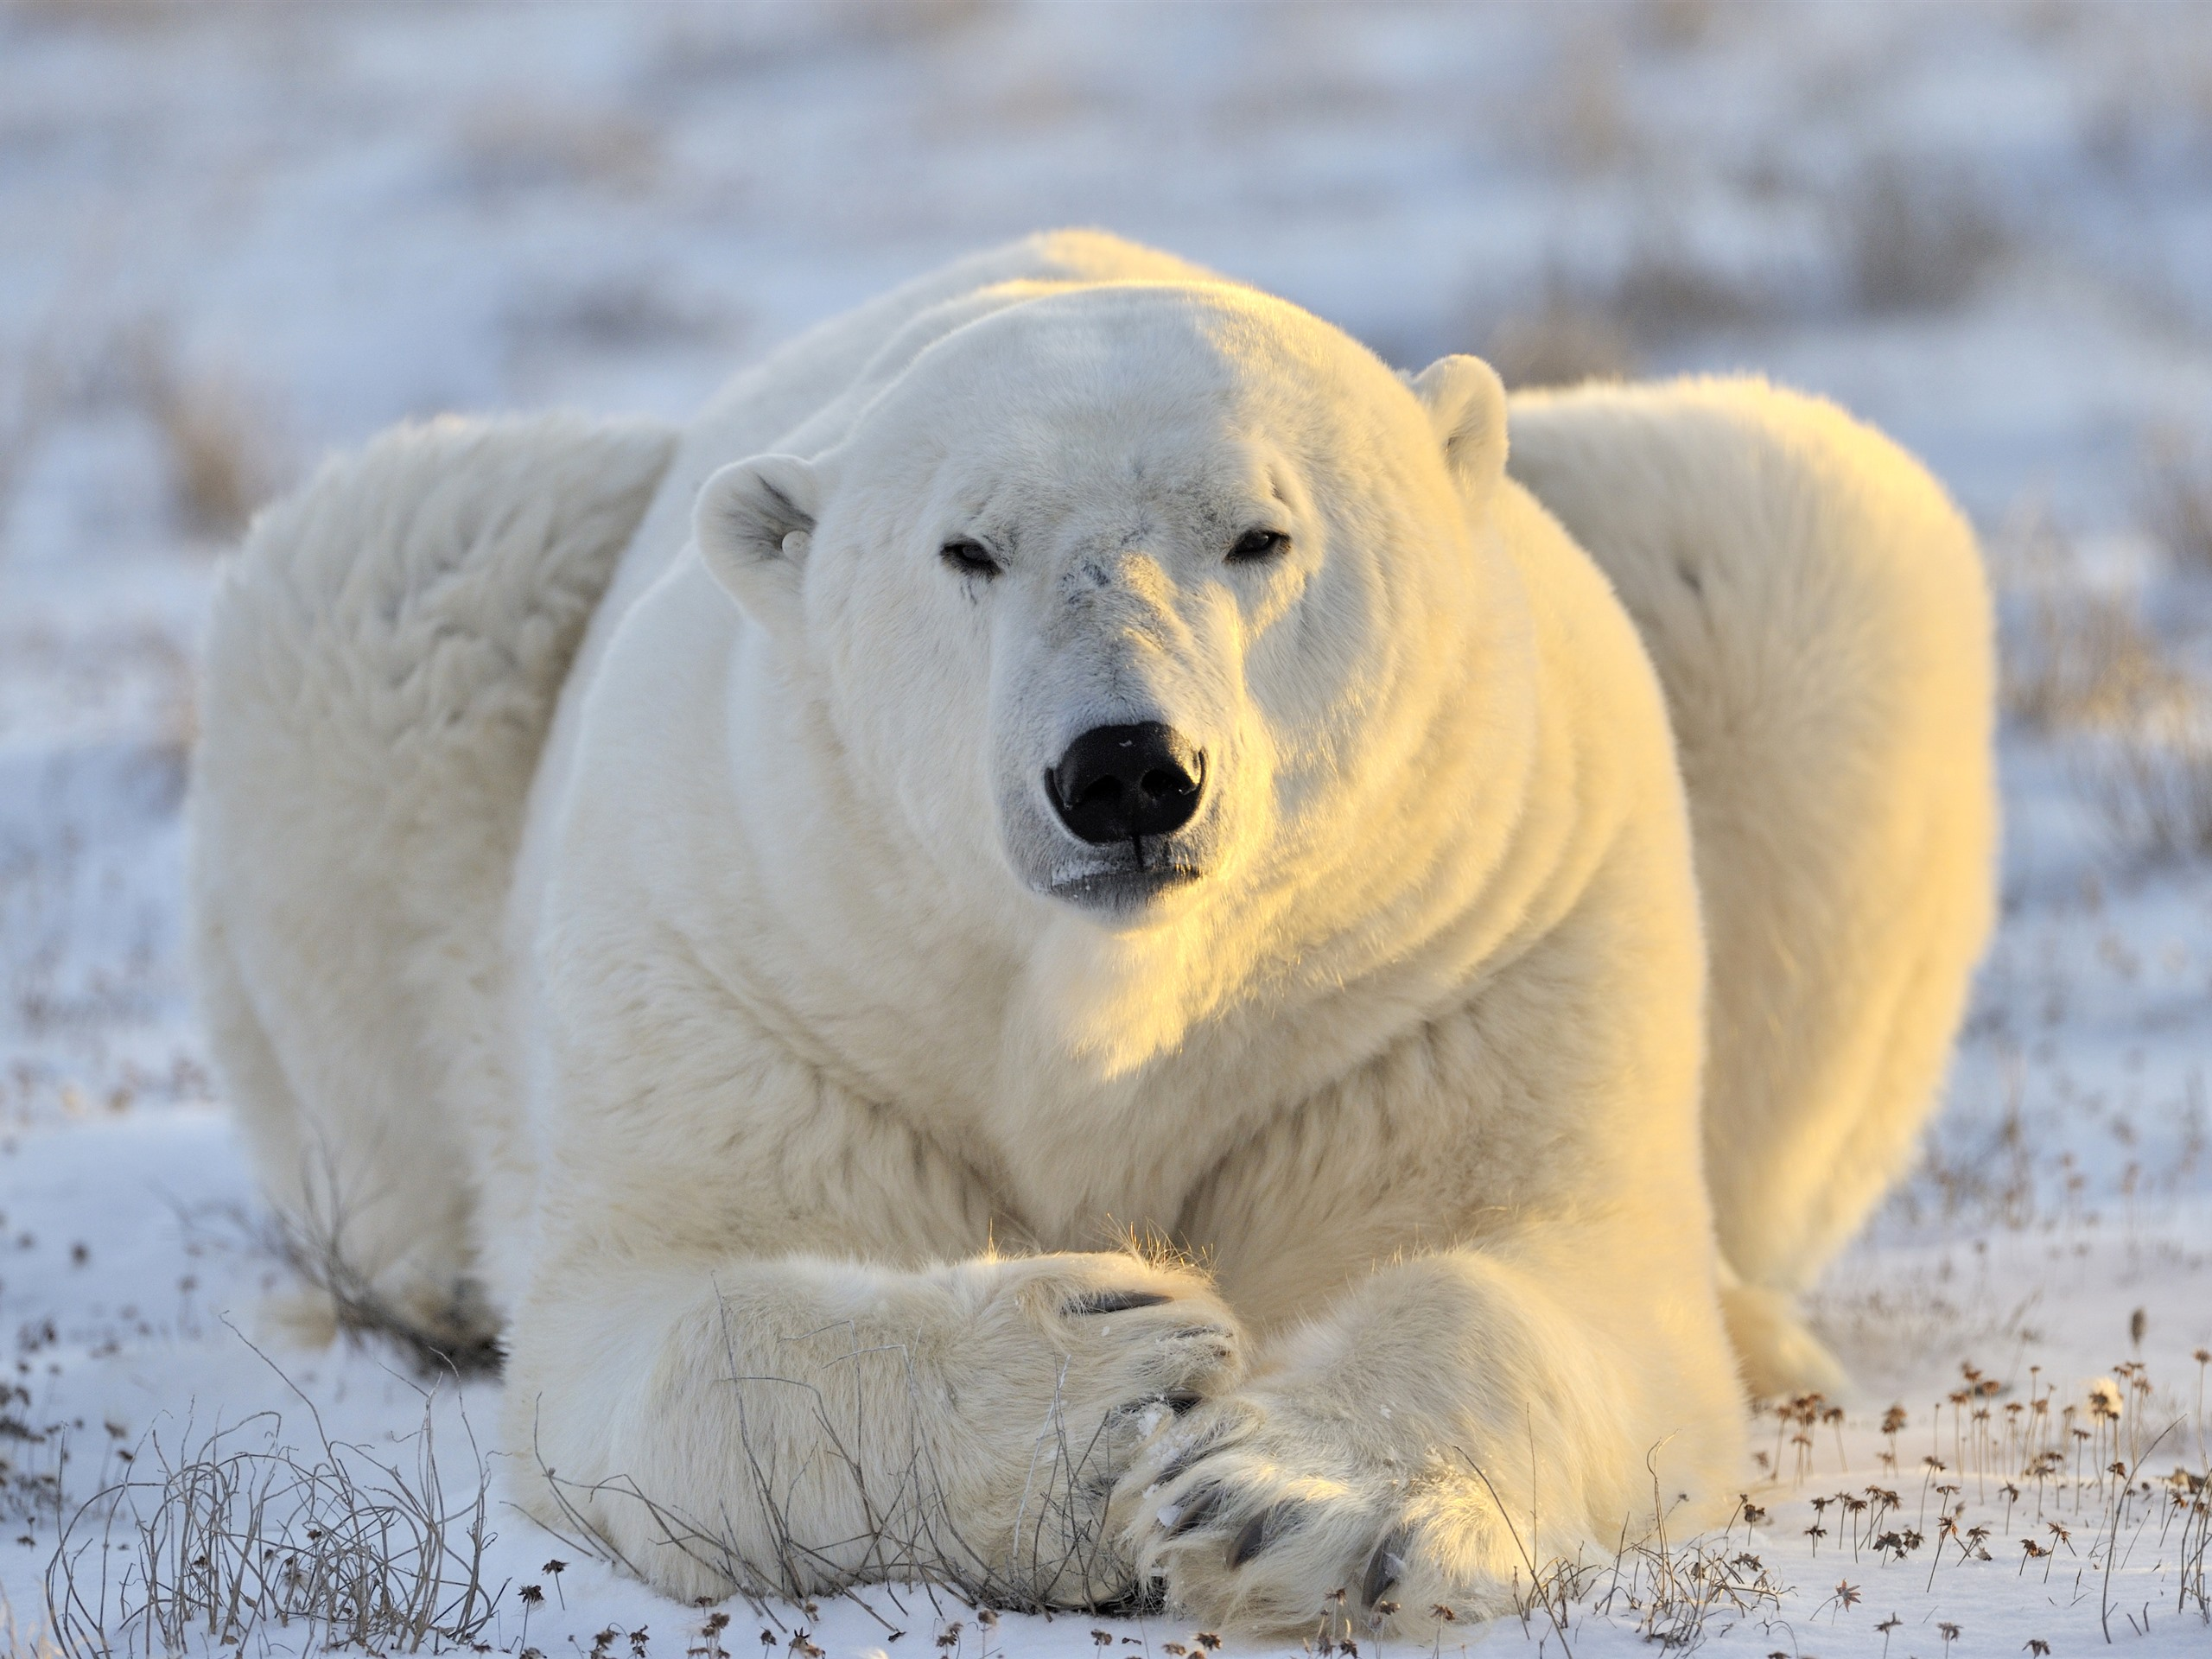 Wallpaper Polar Bear Front View Rest Snow 3840x2160 Uhd 4k Picture Image Free site with personal ads for bears and fans of hairy bears. view rest snow 3840x2160 uhd 4k